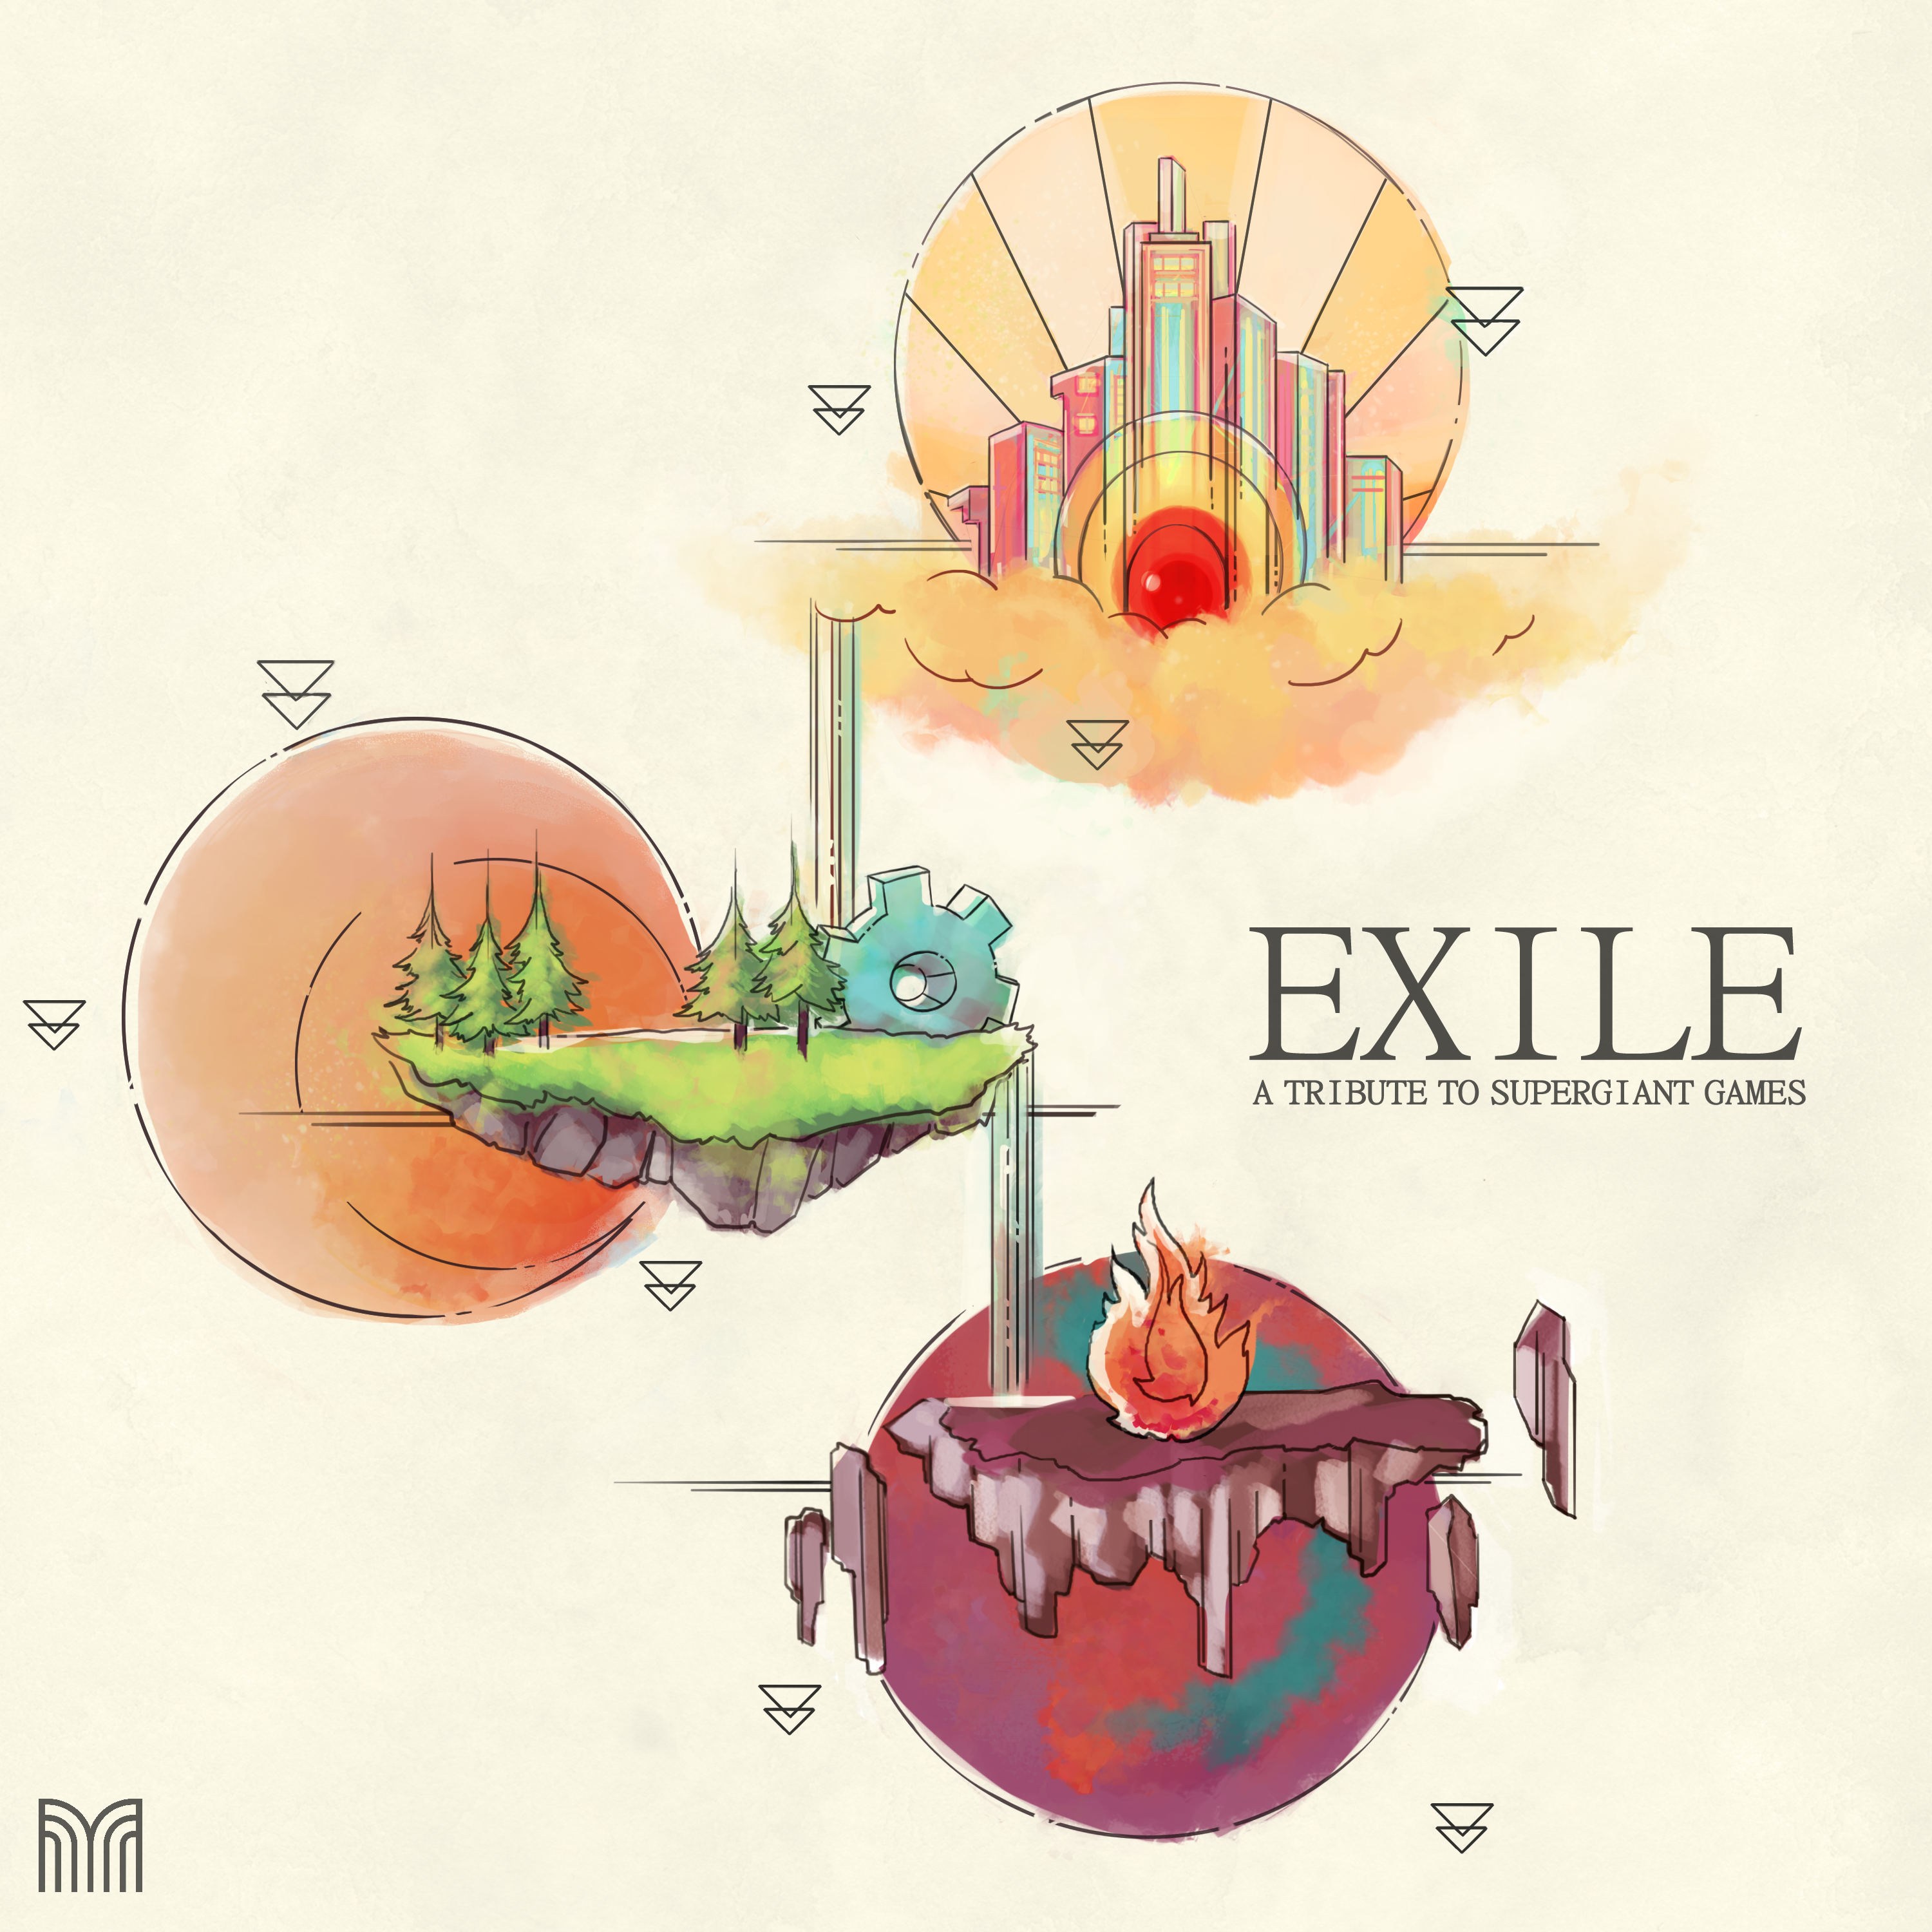 EXILE: A Tribute to Supergiant Games | Materia Collective